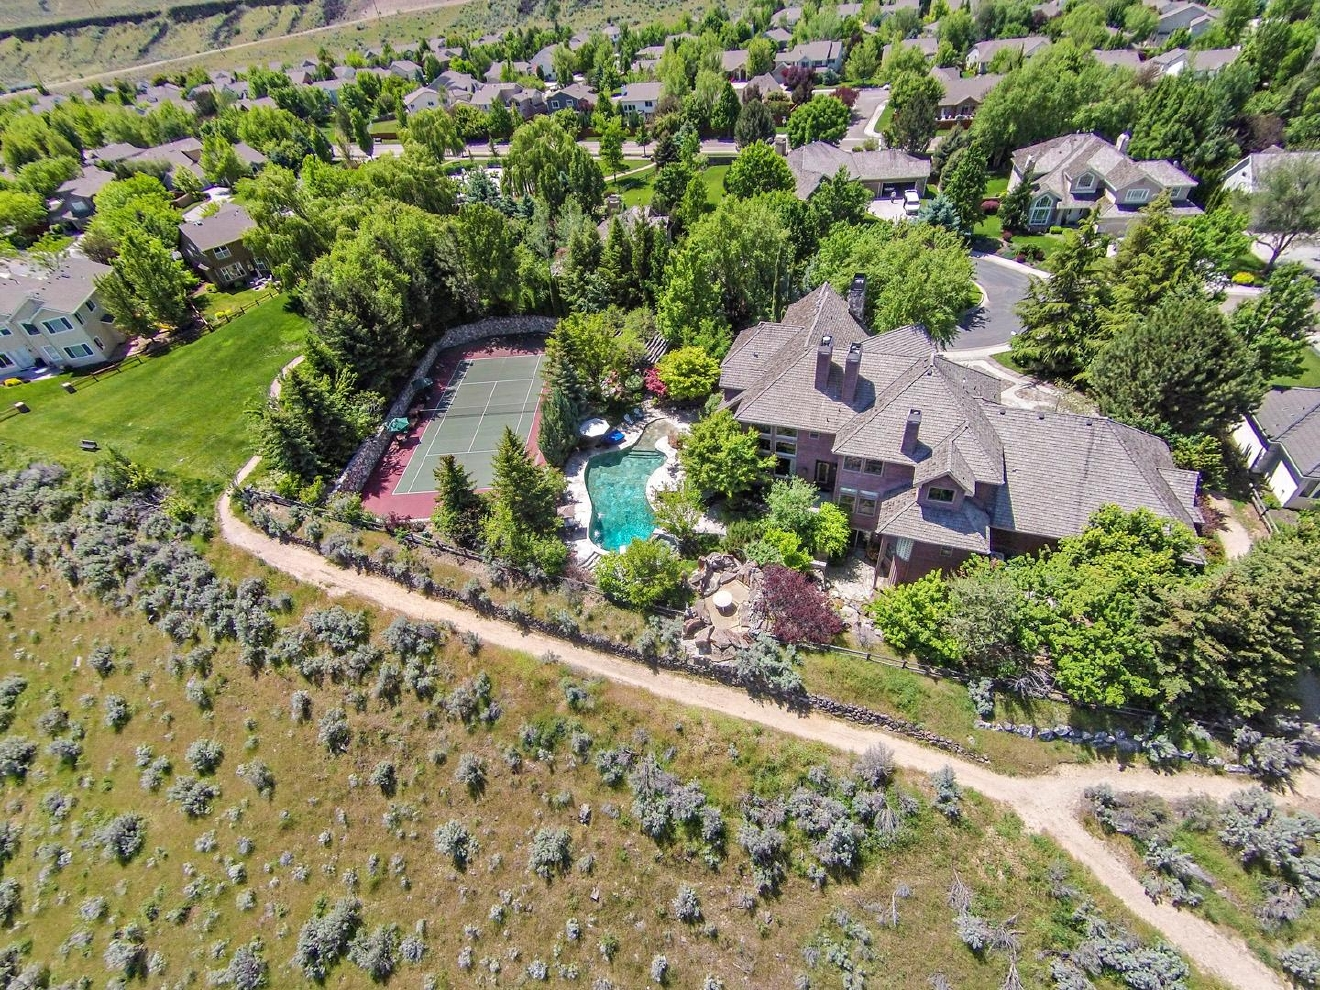 One of a kind! Rim View Estate Home on 3/4 acres with a resort-like backyard. Incredible panoramic views of the mountains, Barber Wildlife Preserve and downtown. Over 50 gorgeous mature trees surround the home. Original Flagstone Rock Pool & Spa, Sunken Tennis Court with imported rock walls, timbered cabana & stunning waterfall. The home boasts beautiful vaulted ceilings, two laundry rooms, workout room, wine closet, & more! Only 1/2 mile to the Greenbelt and the Boise River! | Information: John Yochum 208.336.3393 or email jyochum@coldwellbankertg.com